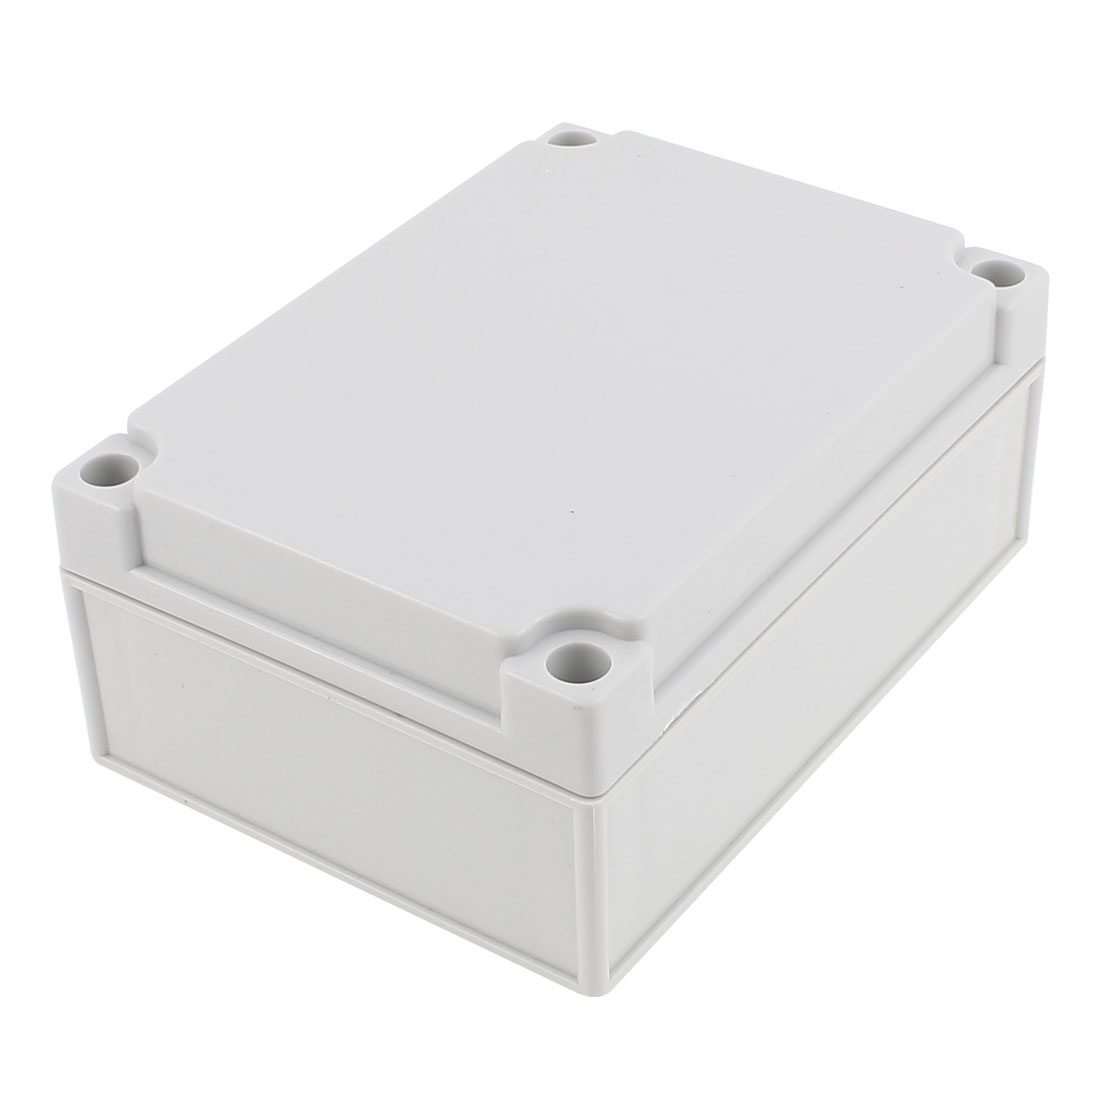 175 x 125 x 75mm Dustproof IP65 Junction Box Terminal Connecting Box Enclosure